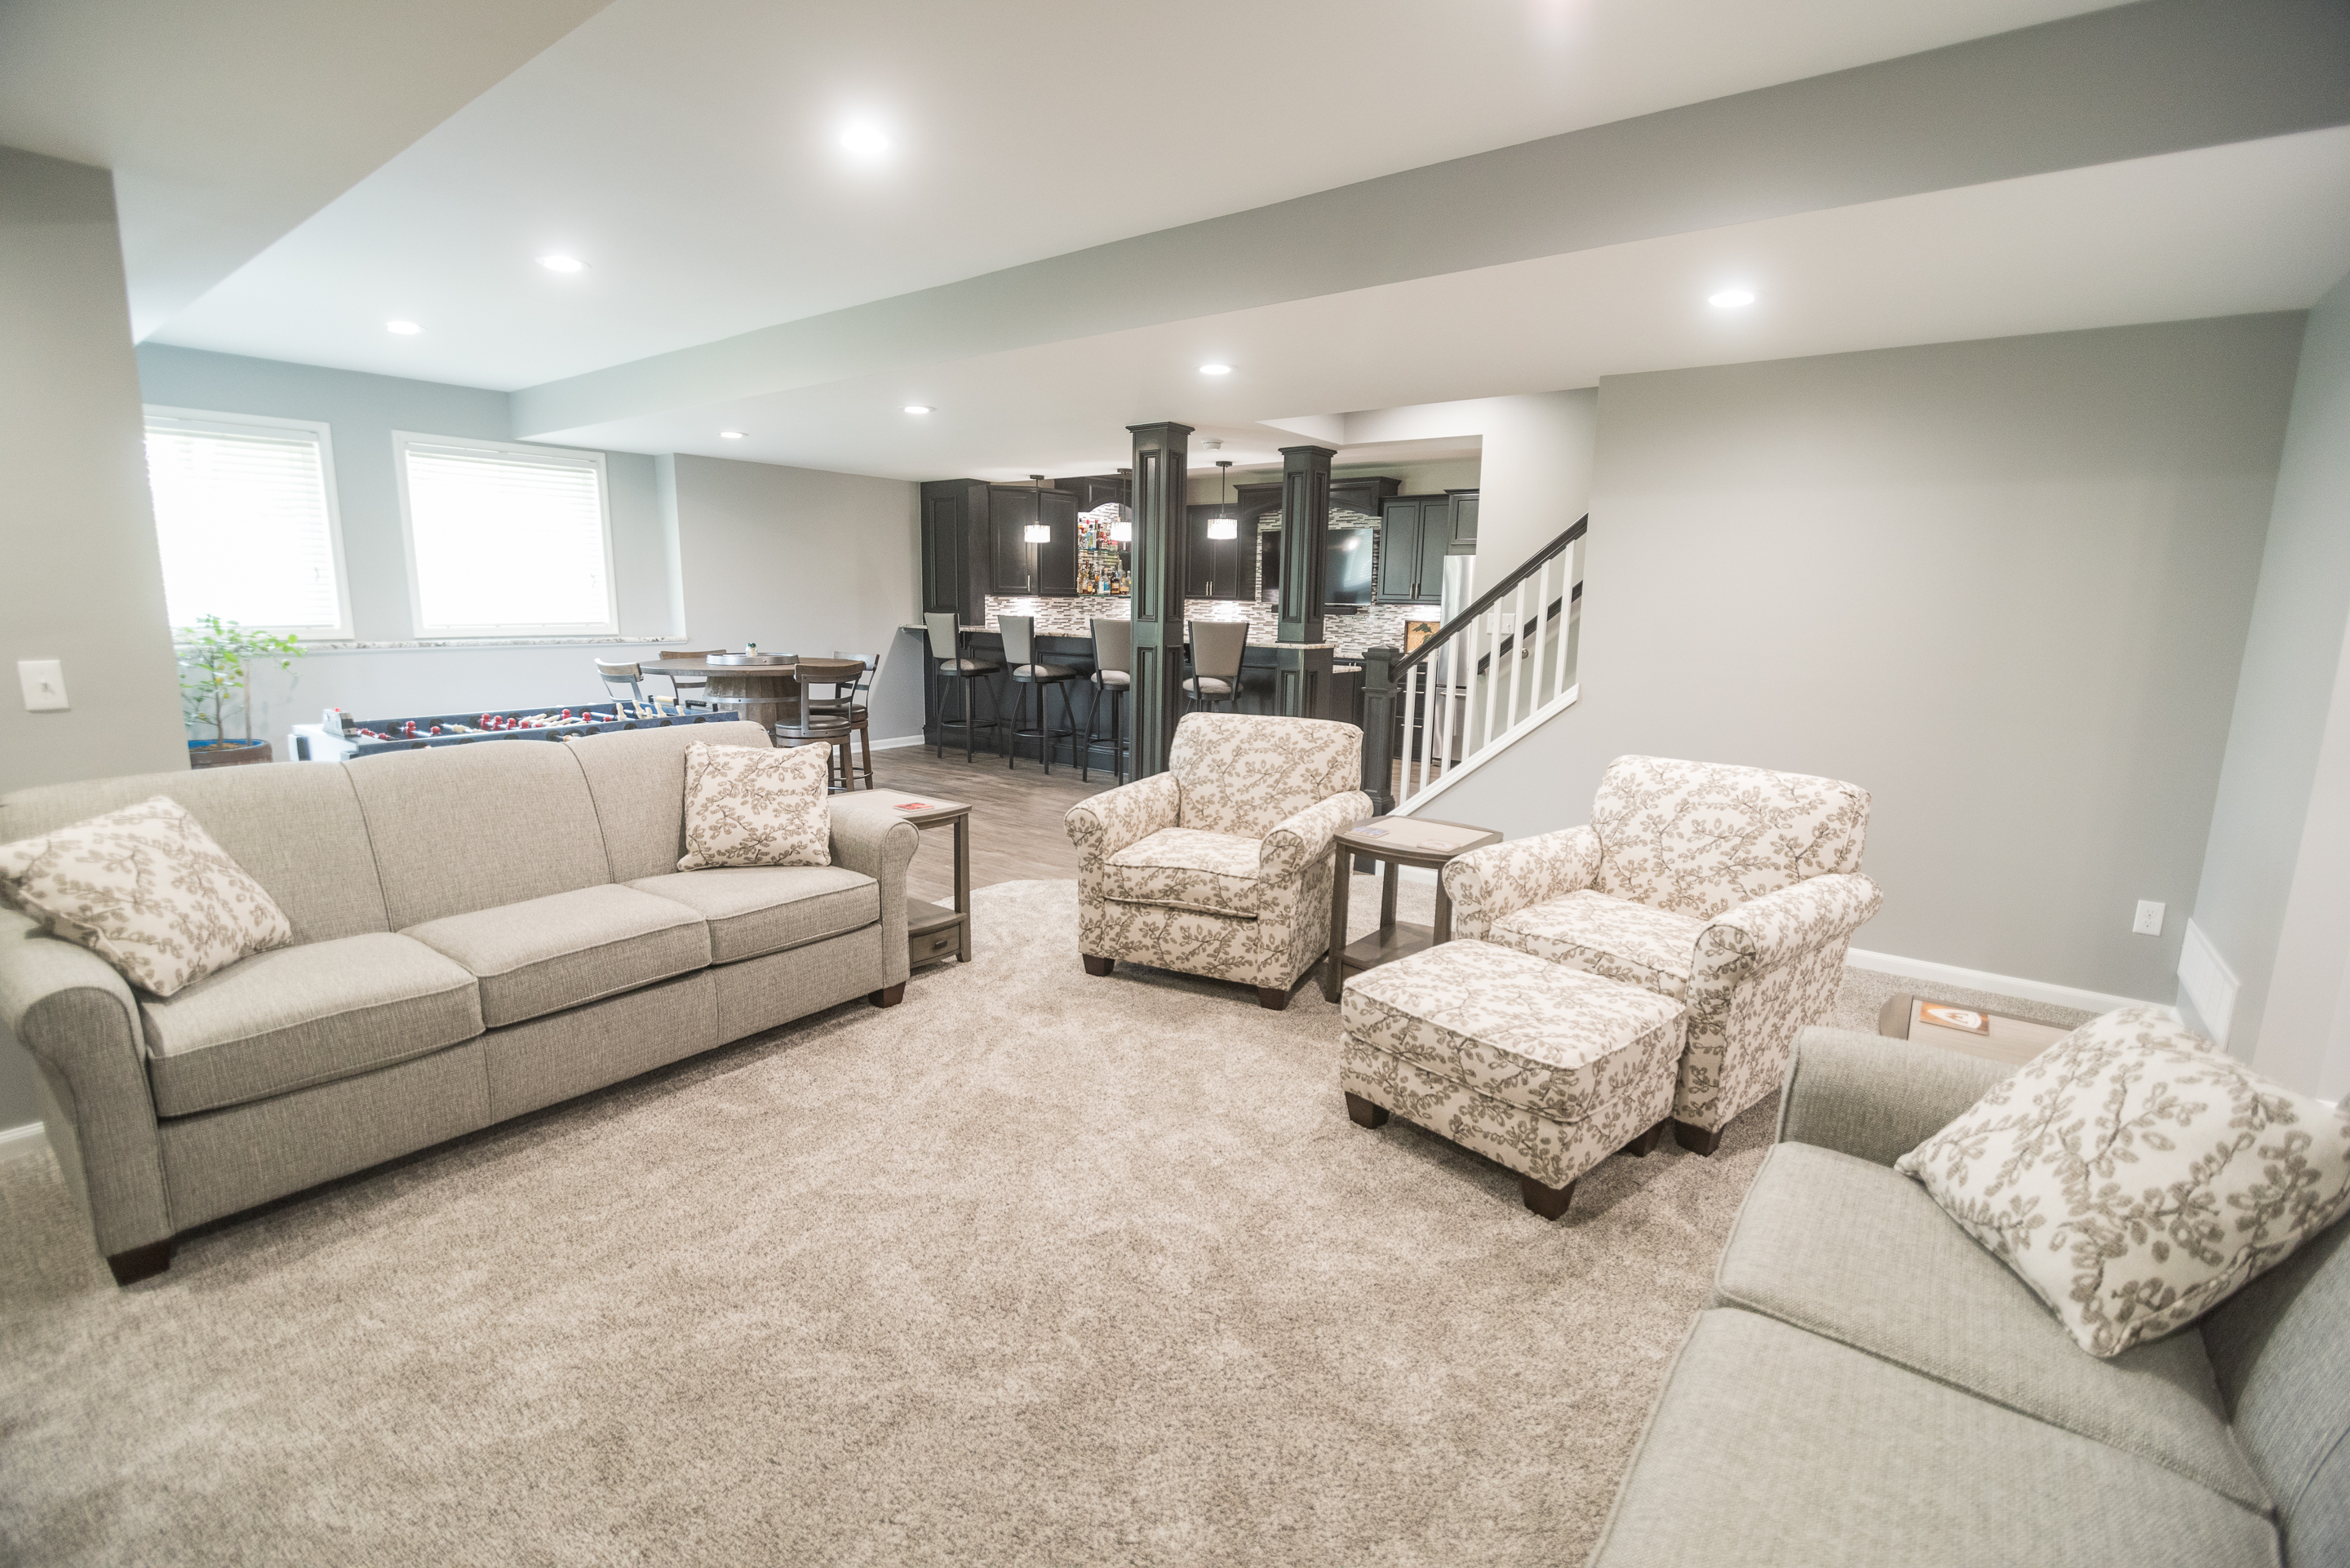 walkout basement with bright lighting and grey walls and carpet